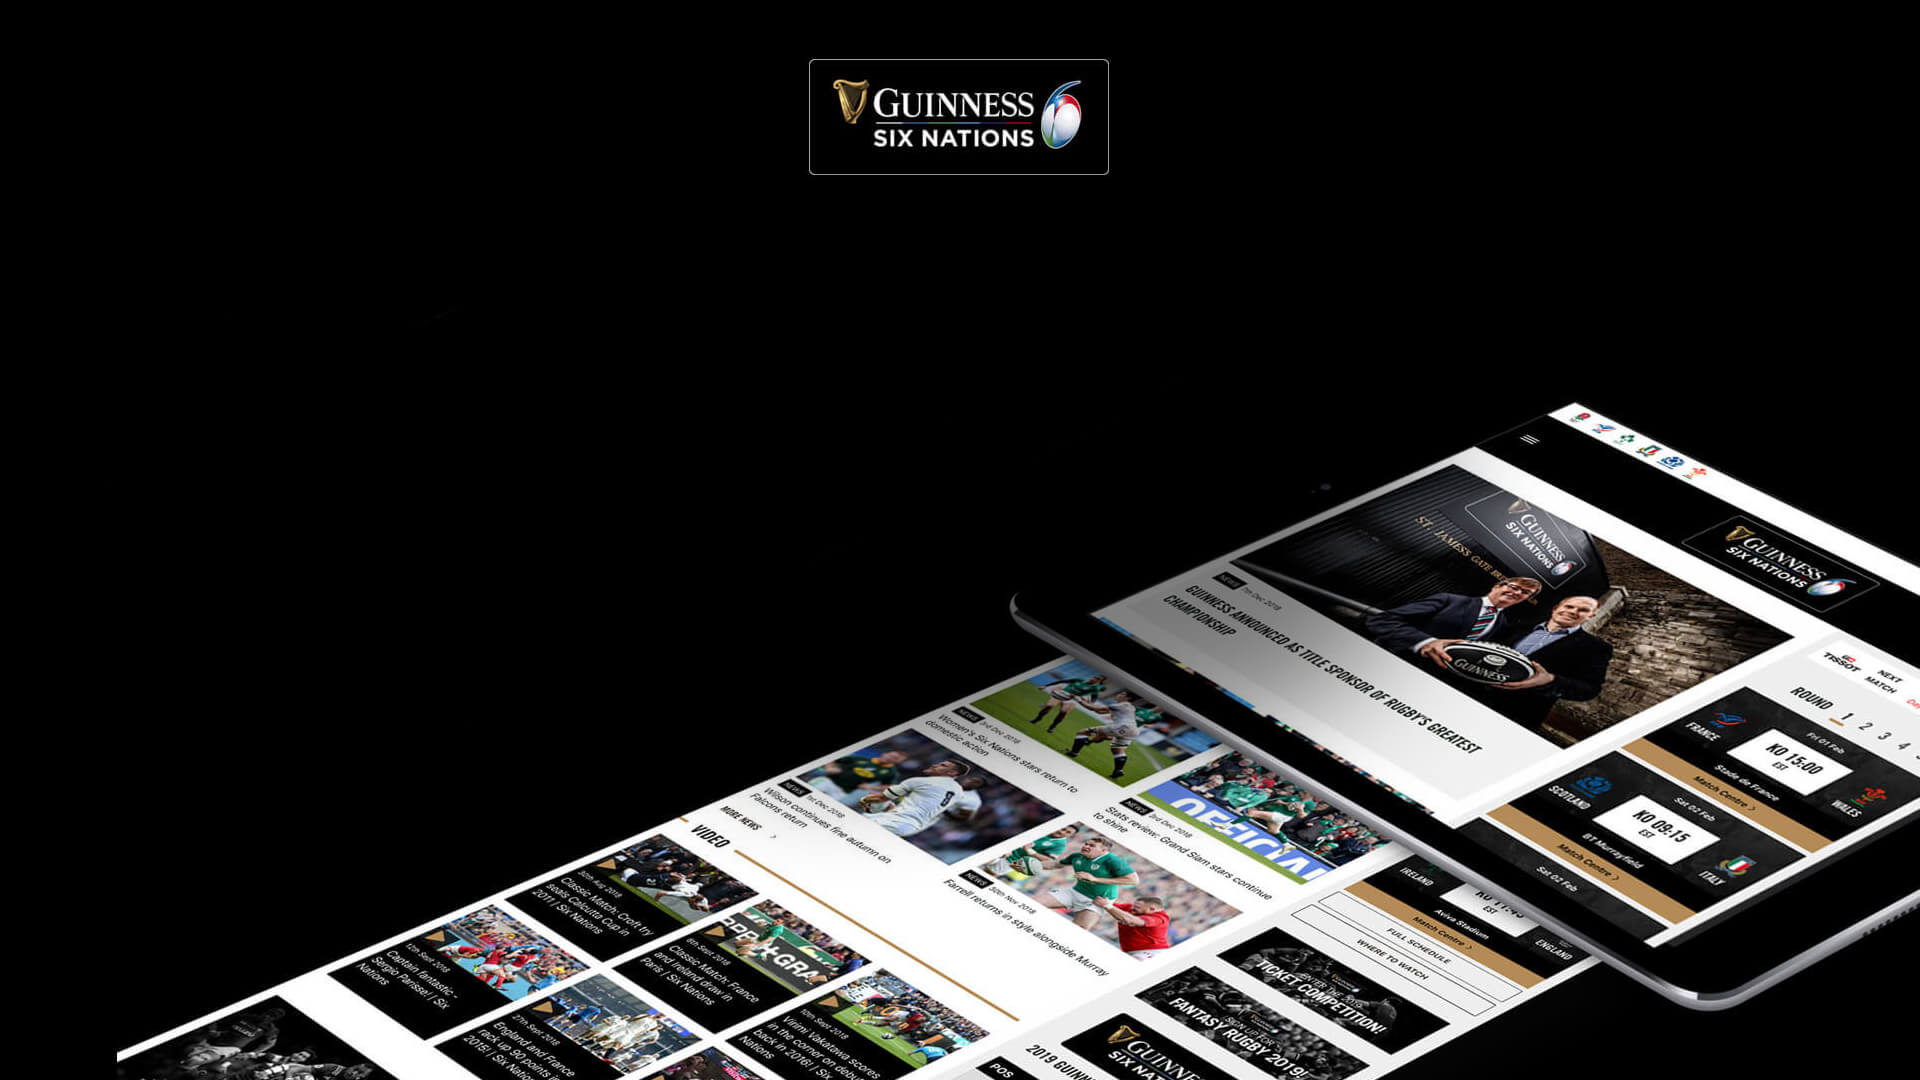 New website unveiled for Guinness Six Nations Rugby